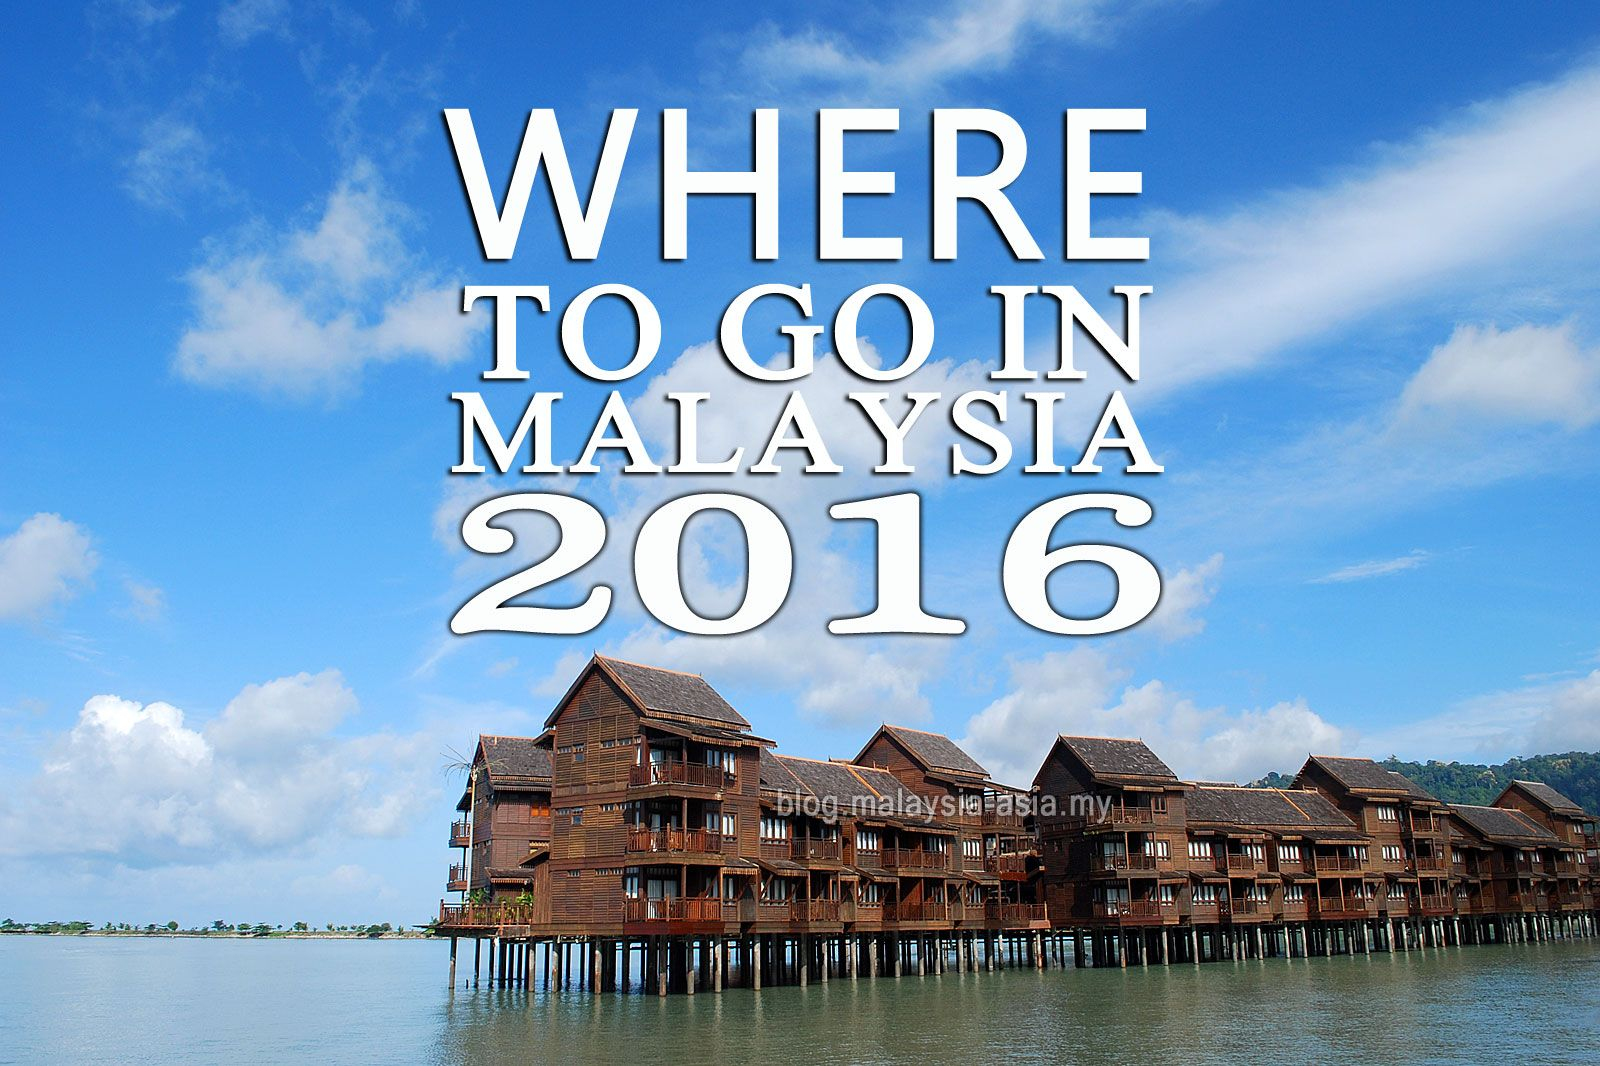 Where to go in Malaysia for 2016